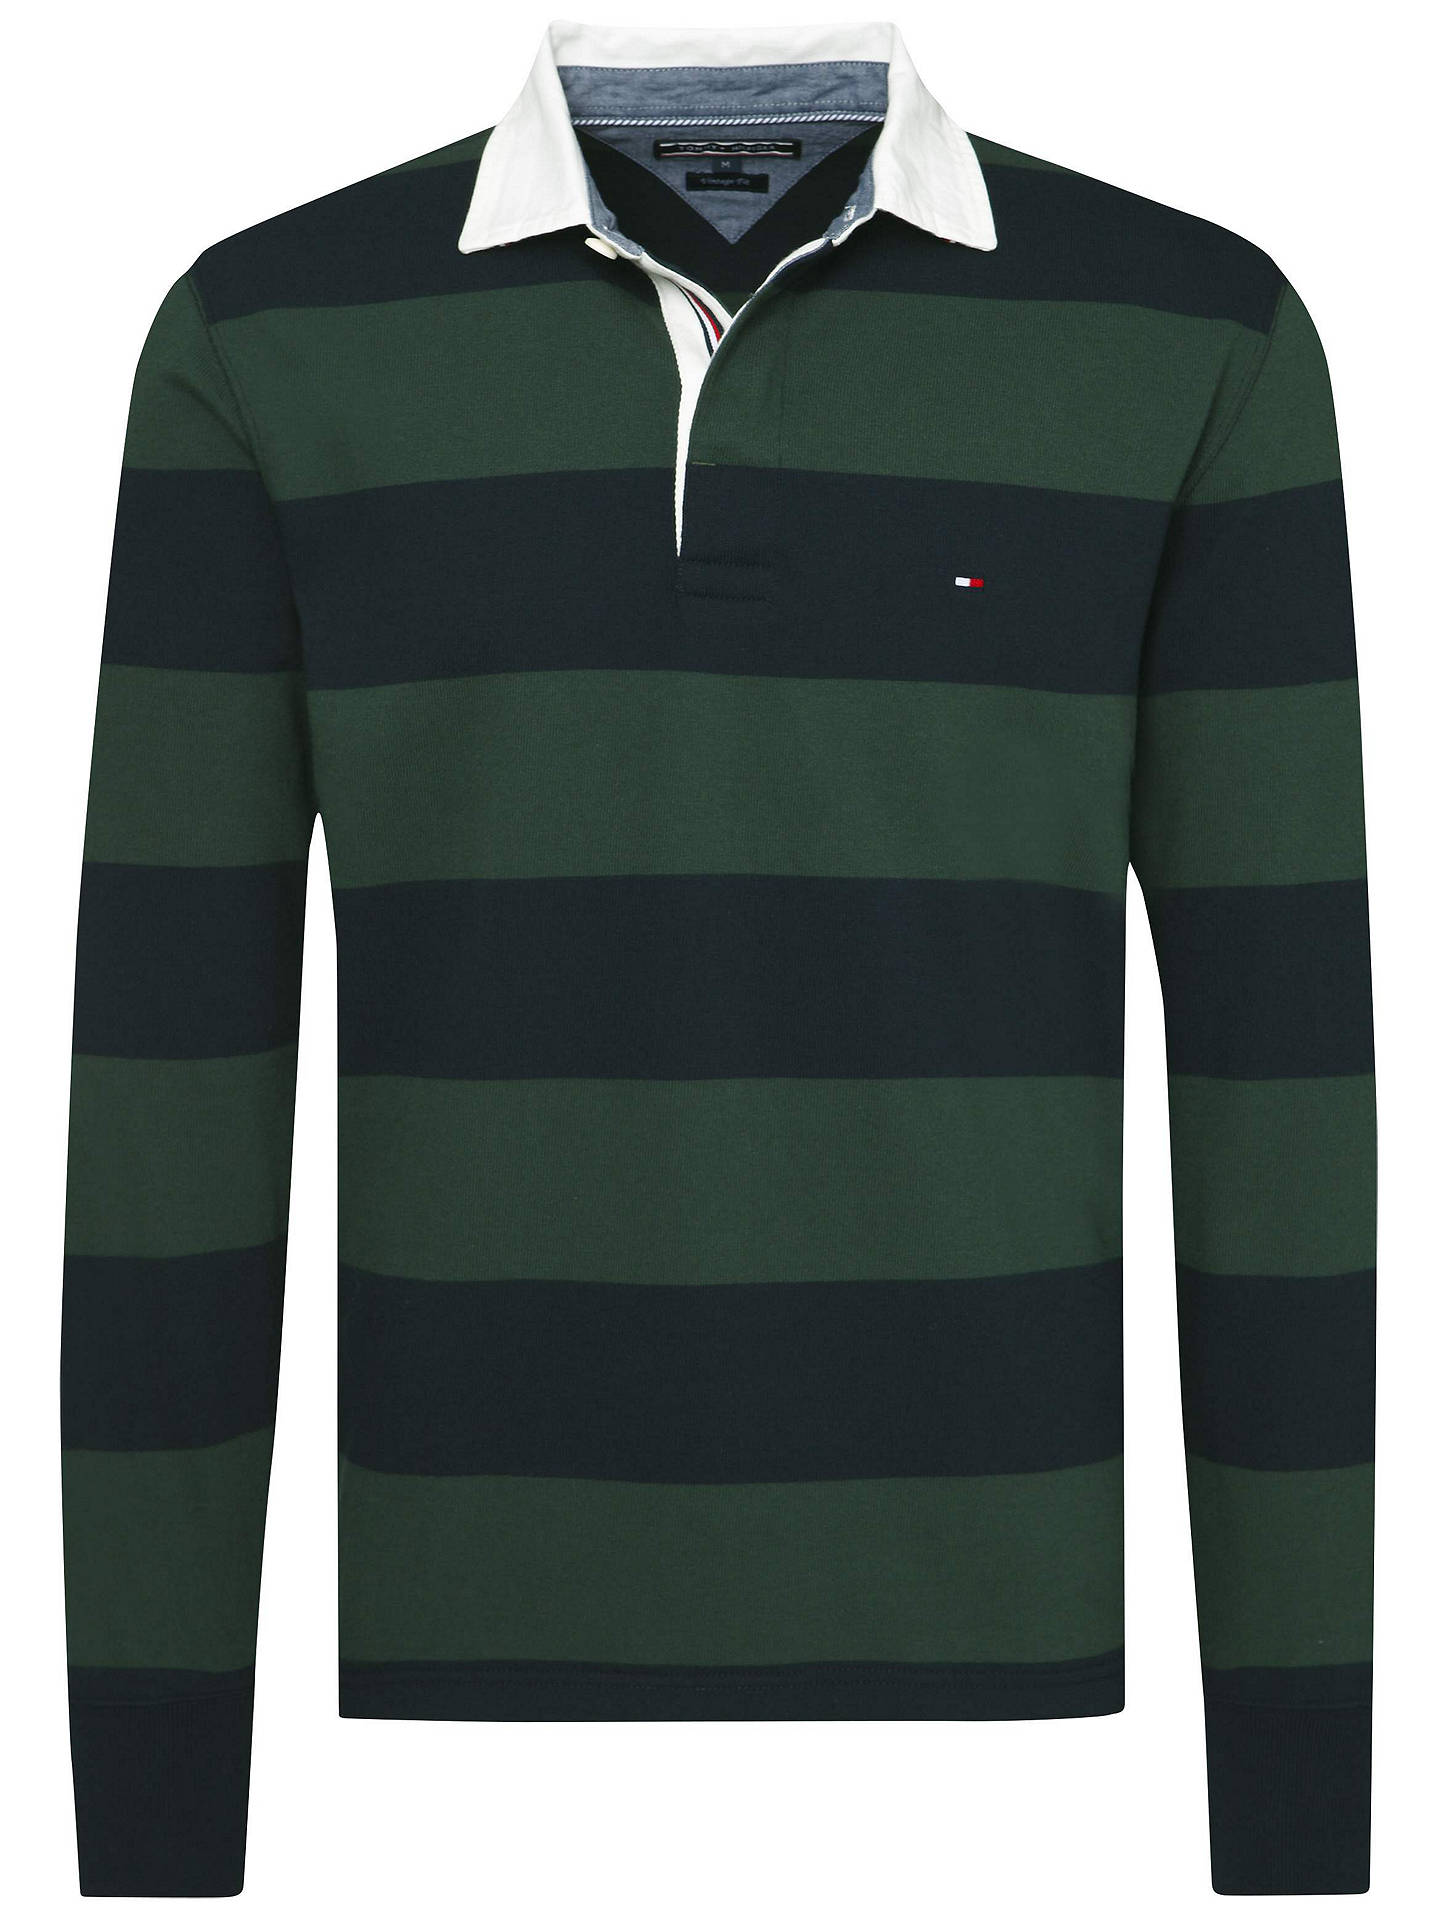 2b243a00c44 Buy Tommy Hilfiger Basic Block Stripe Rugby Shirt, Sky Captain/Darkest  Spruce, S ...